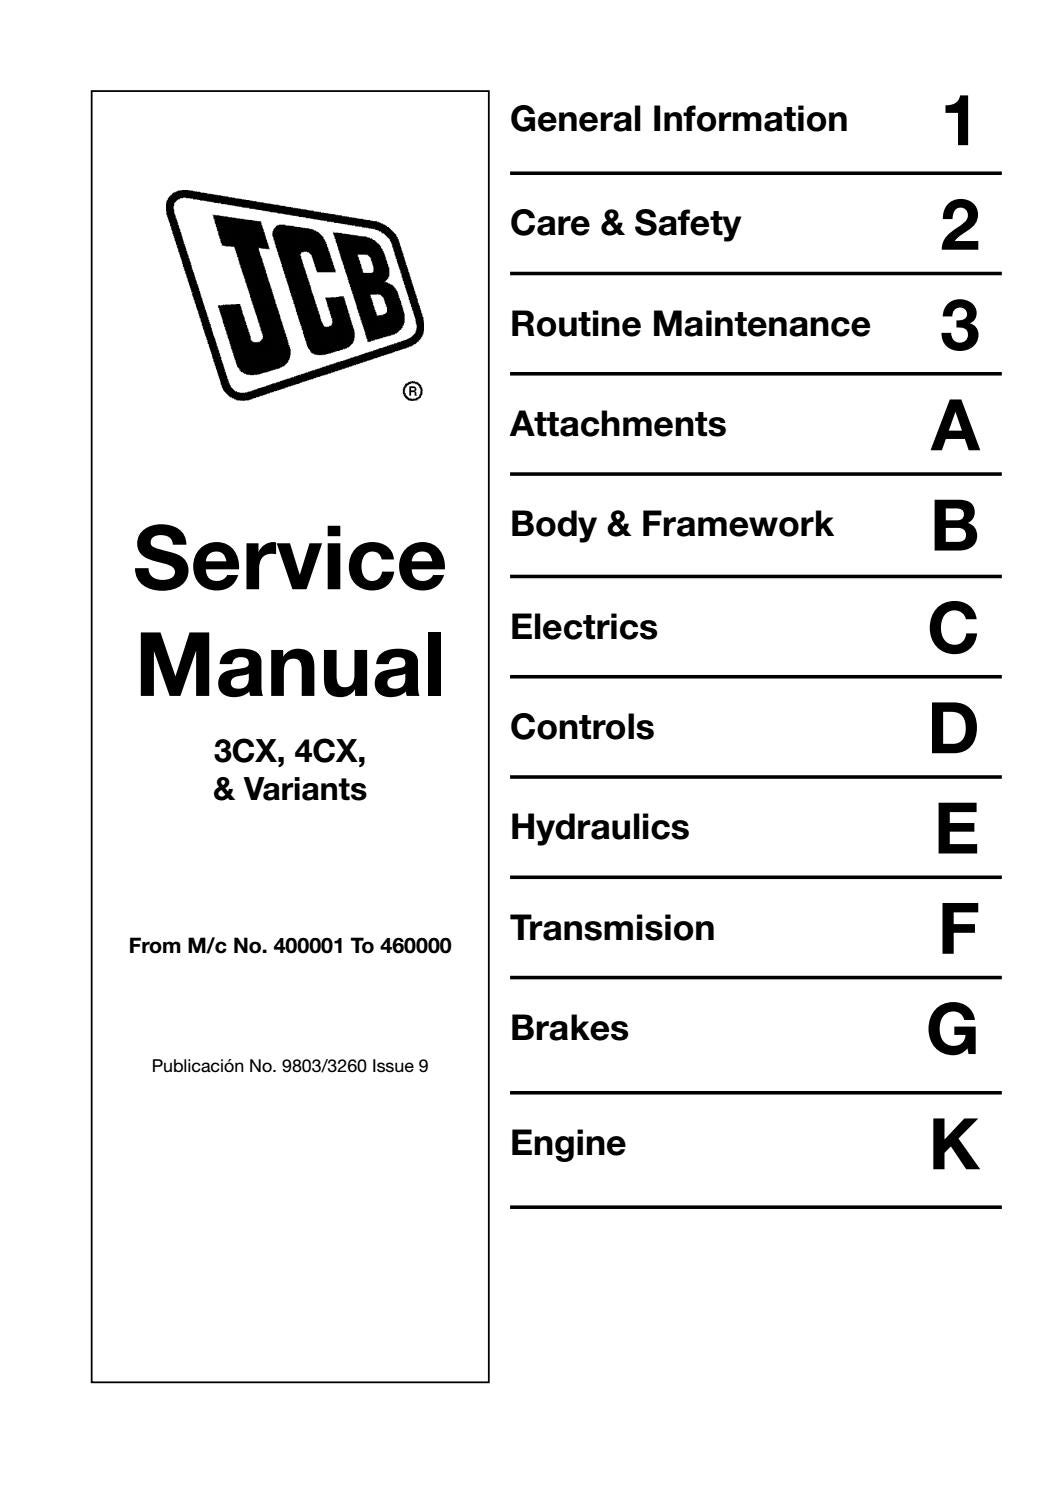 787930A Jcb Backhoe Wiring Diagram 1994   Wiring LibraryWiring Library